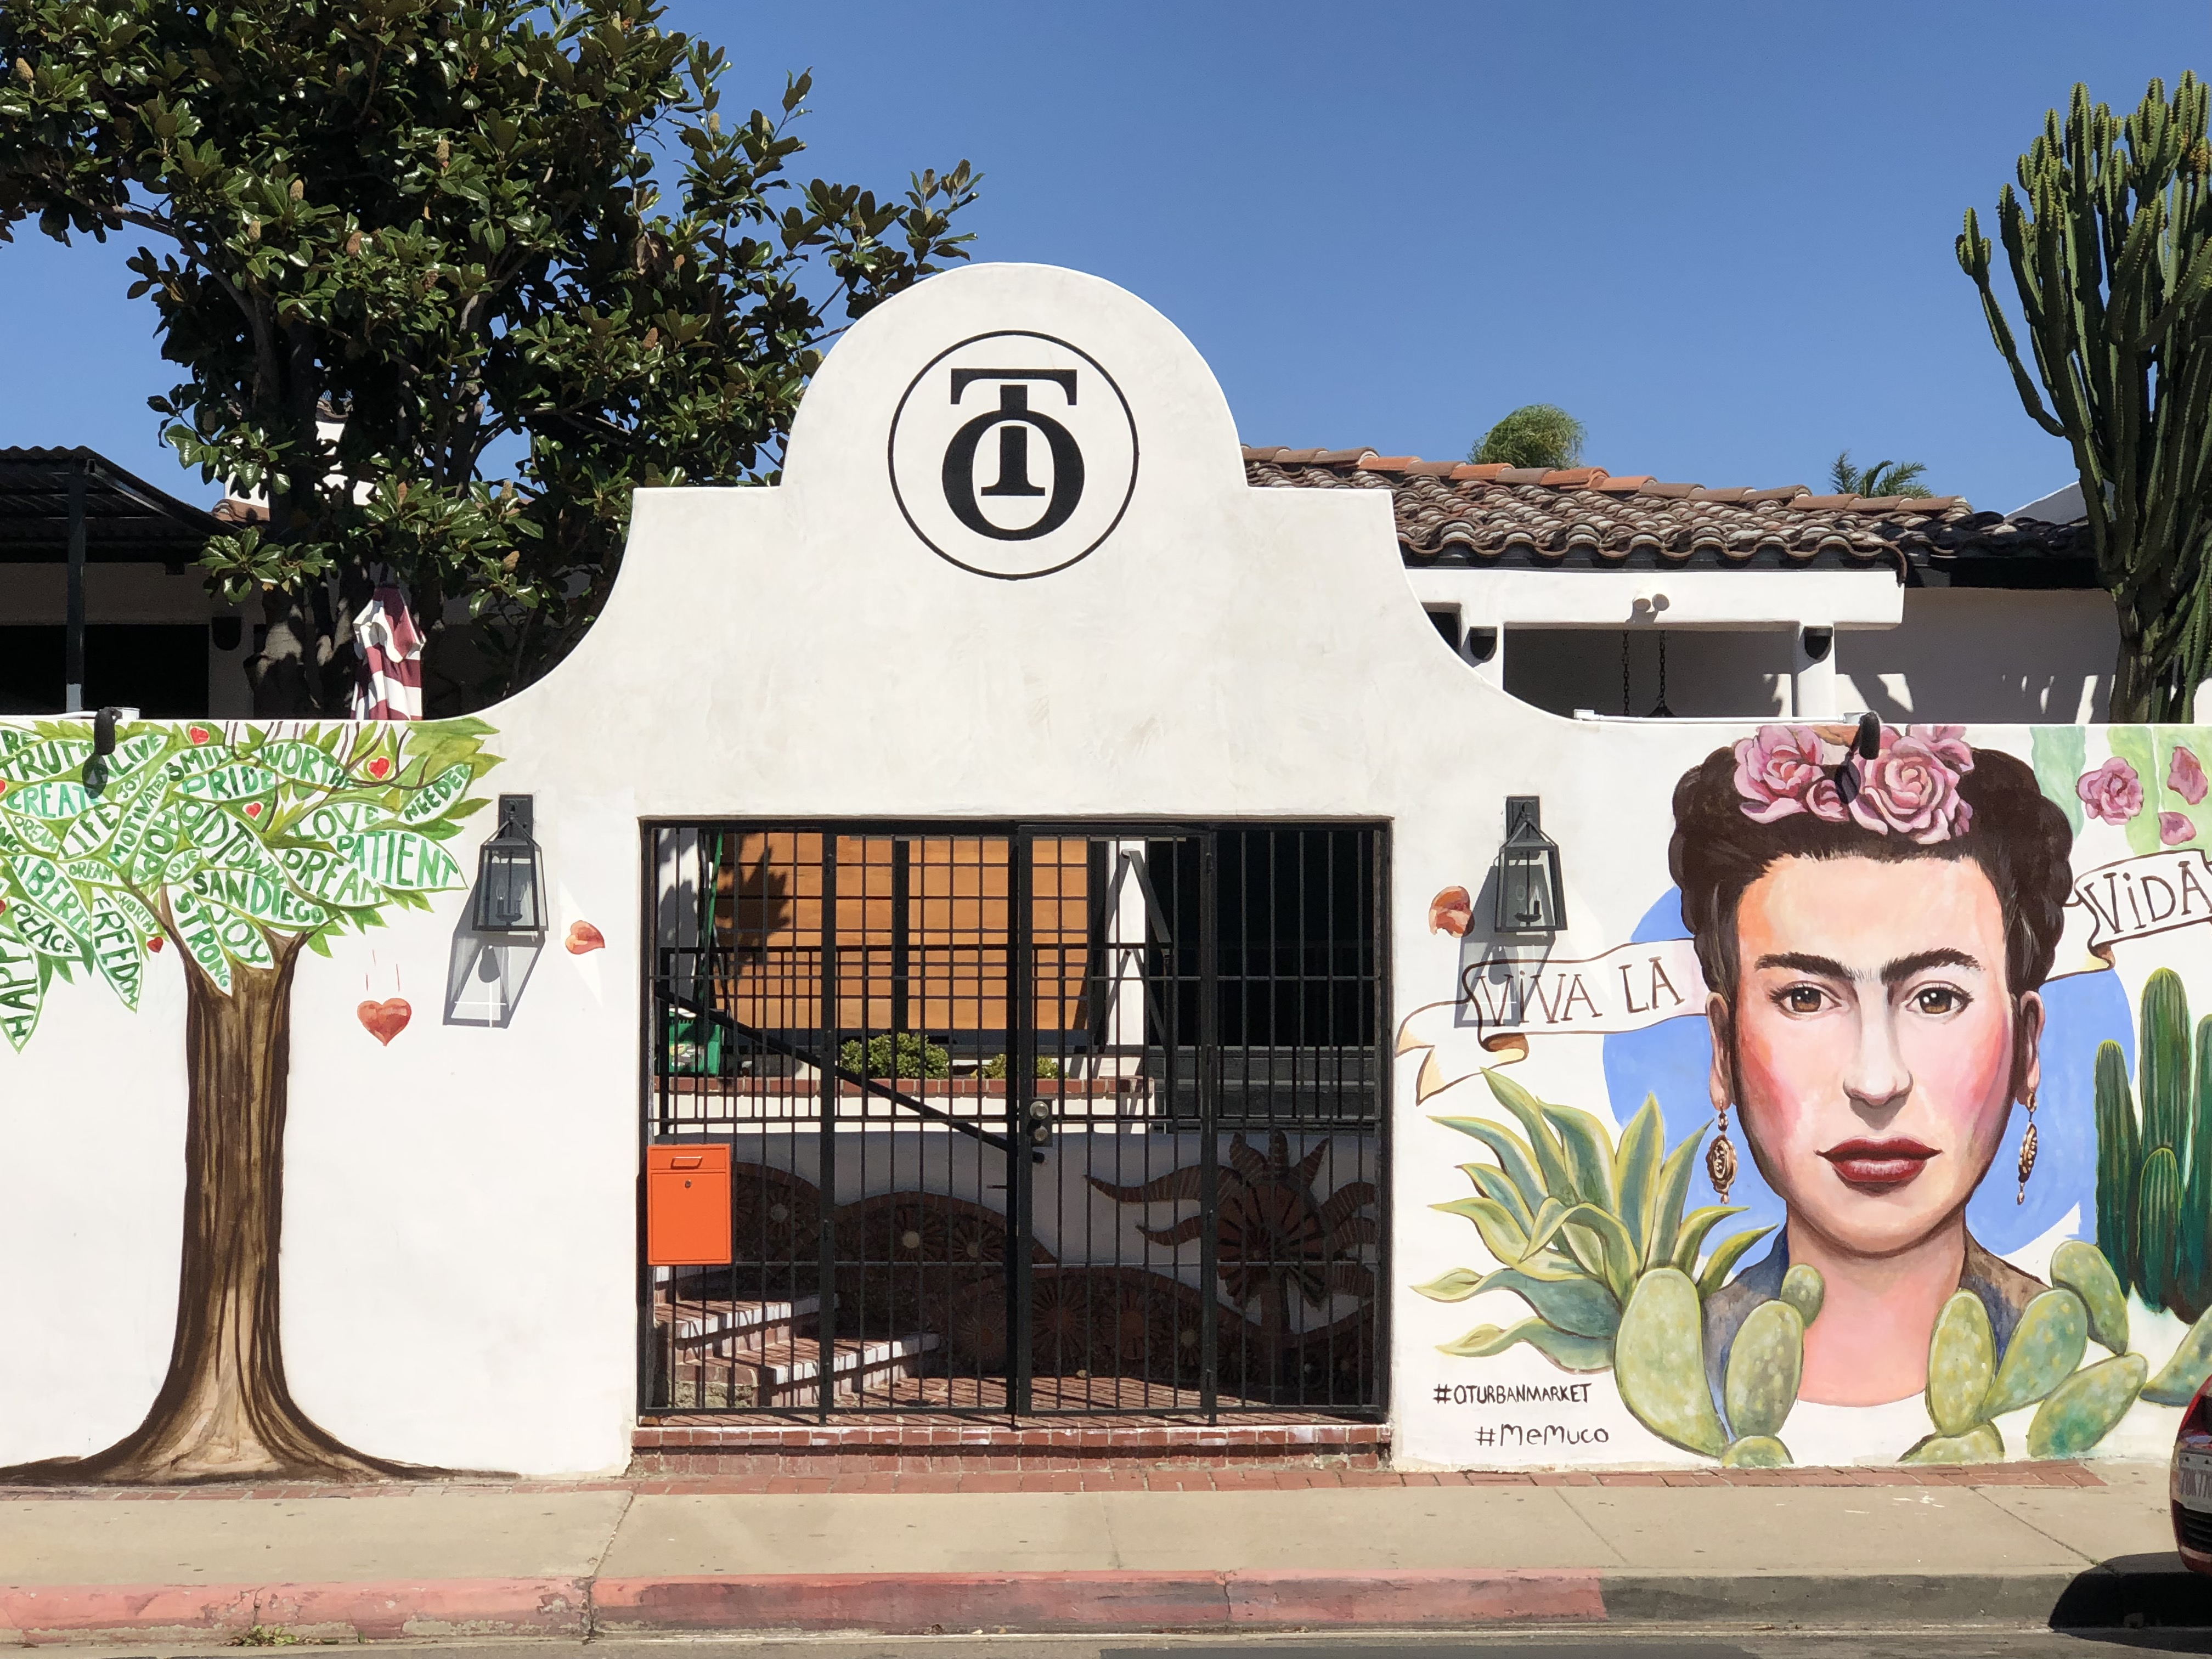 Iron gate and white wall with mural of a tree and portrait of Frieda Kahlo.